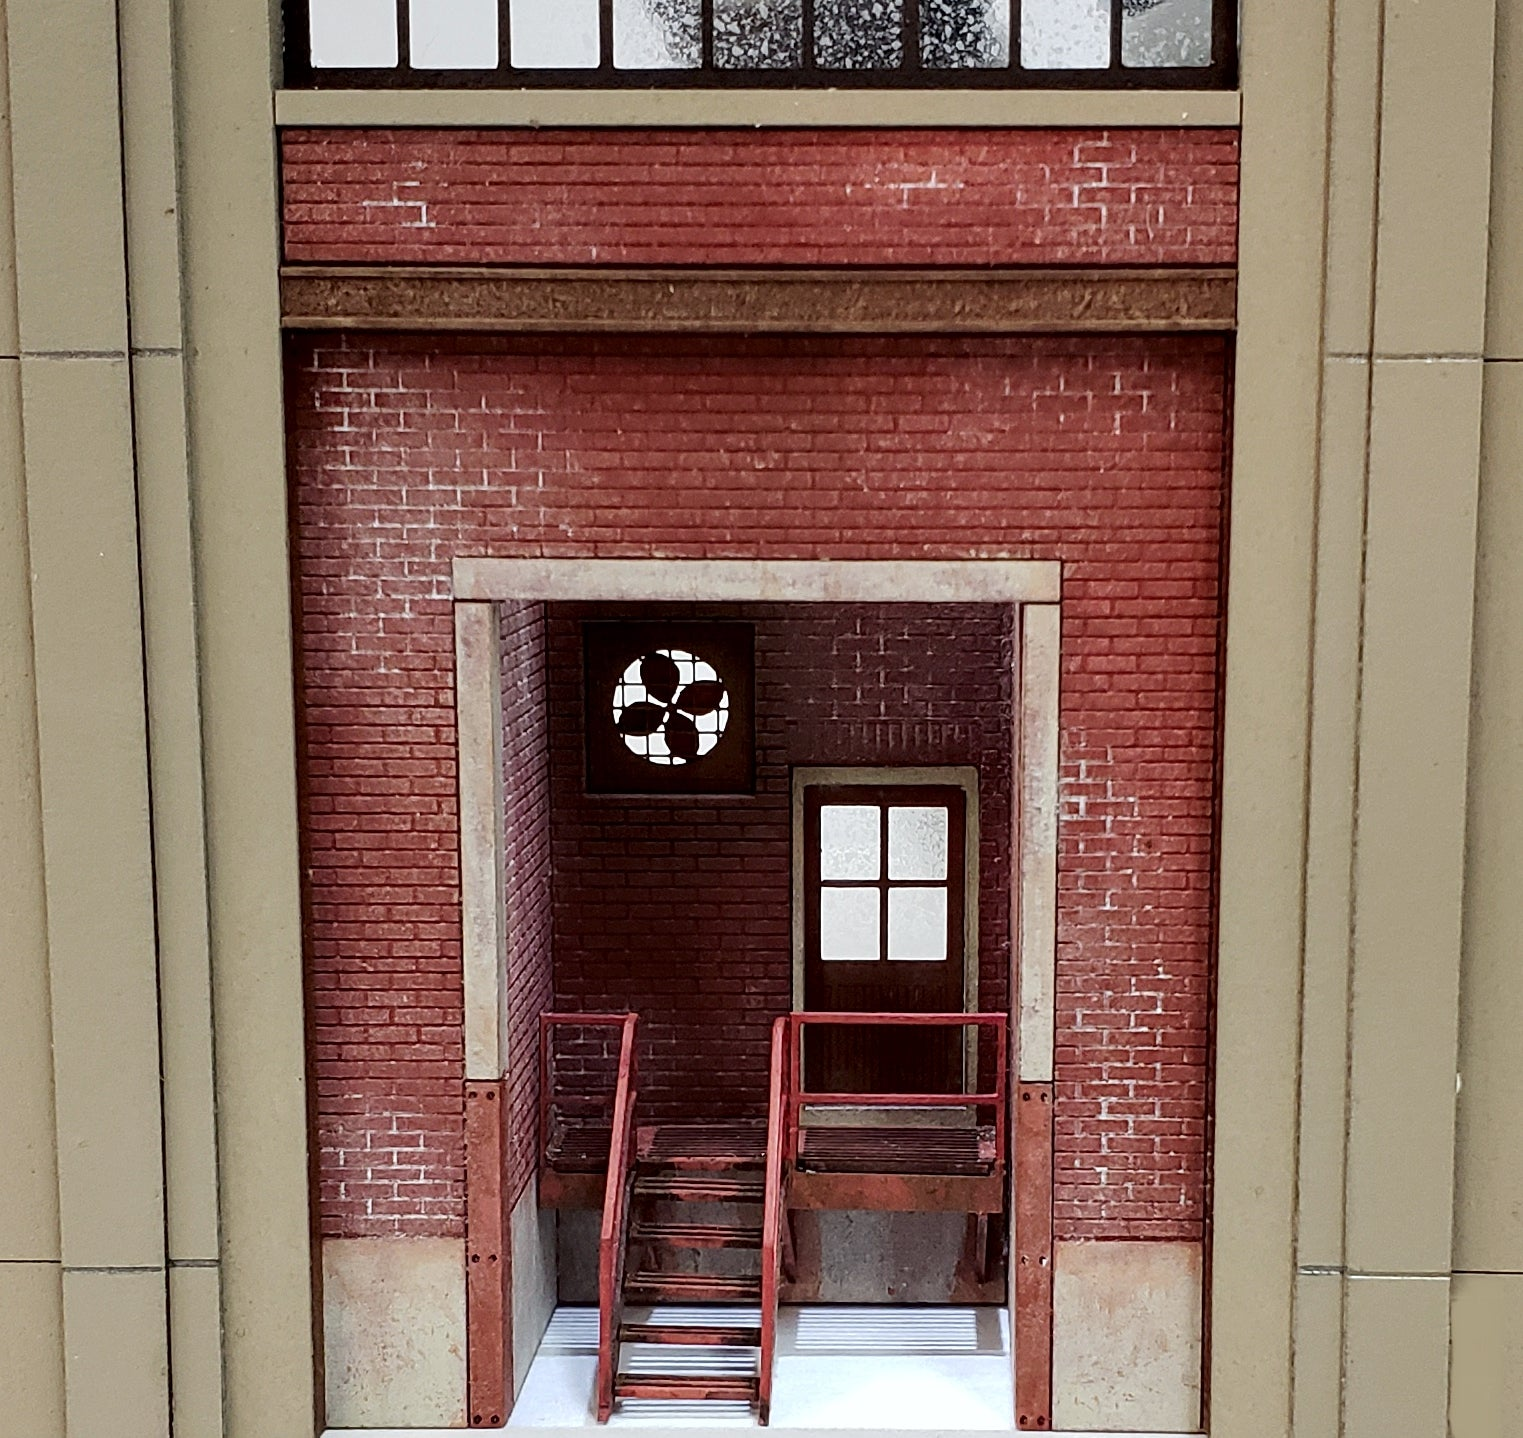 HO Scale Industrial Wall Module - Personnel Entry Doorway - ITLA